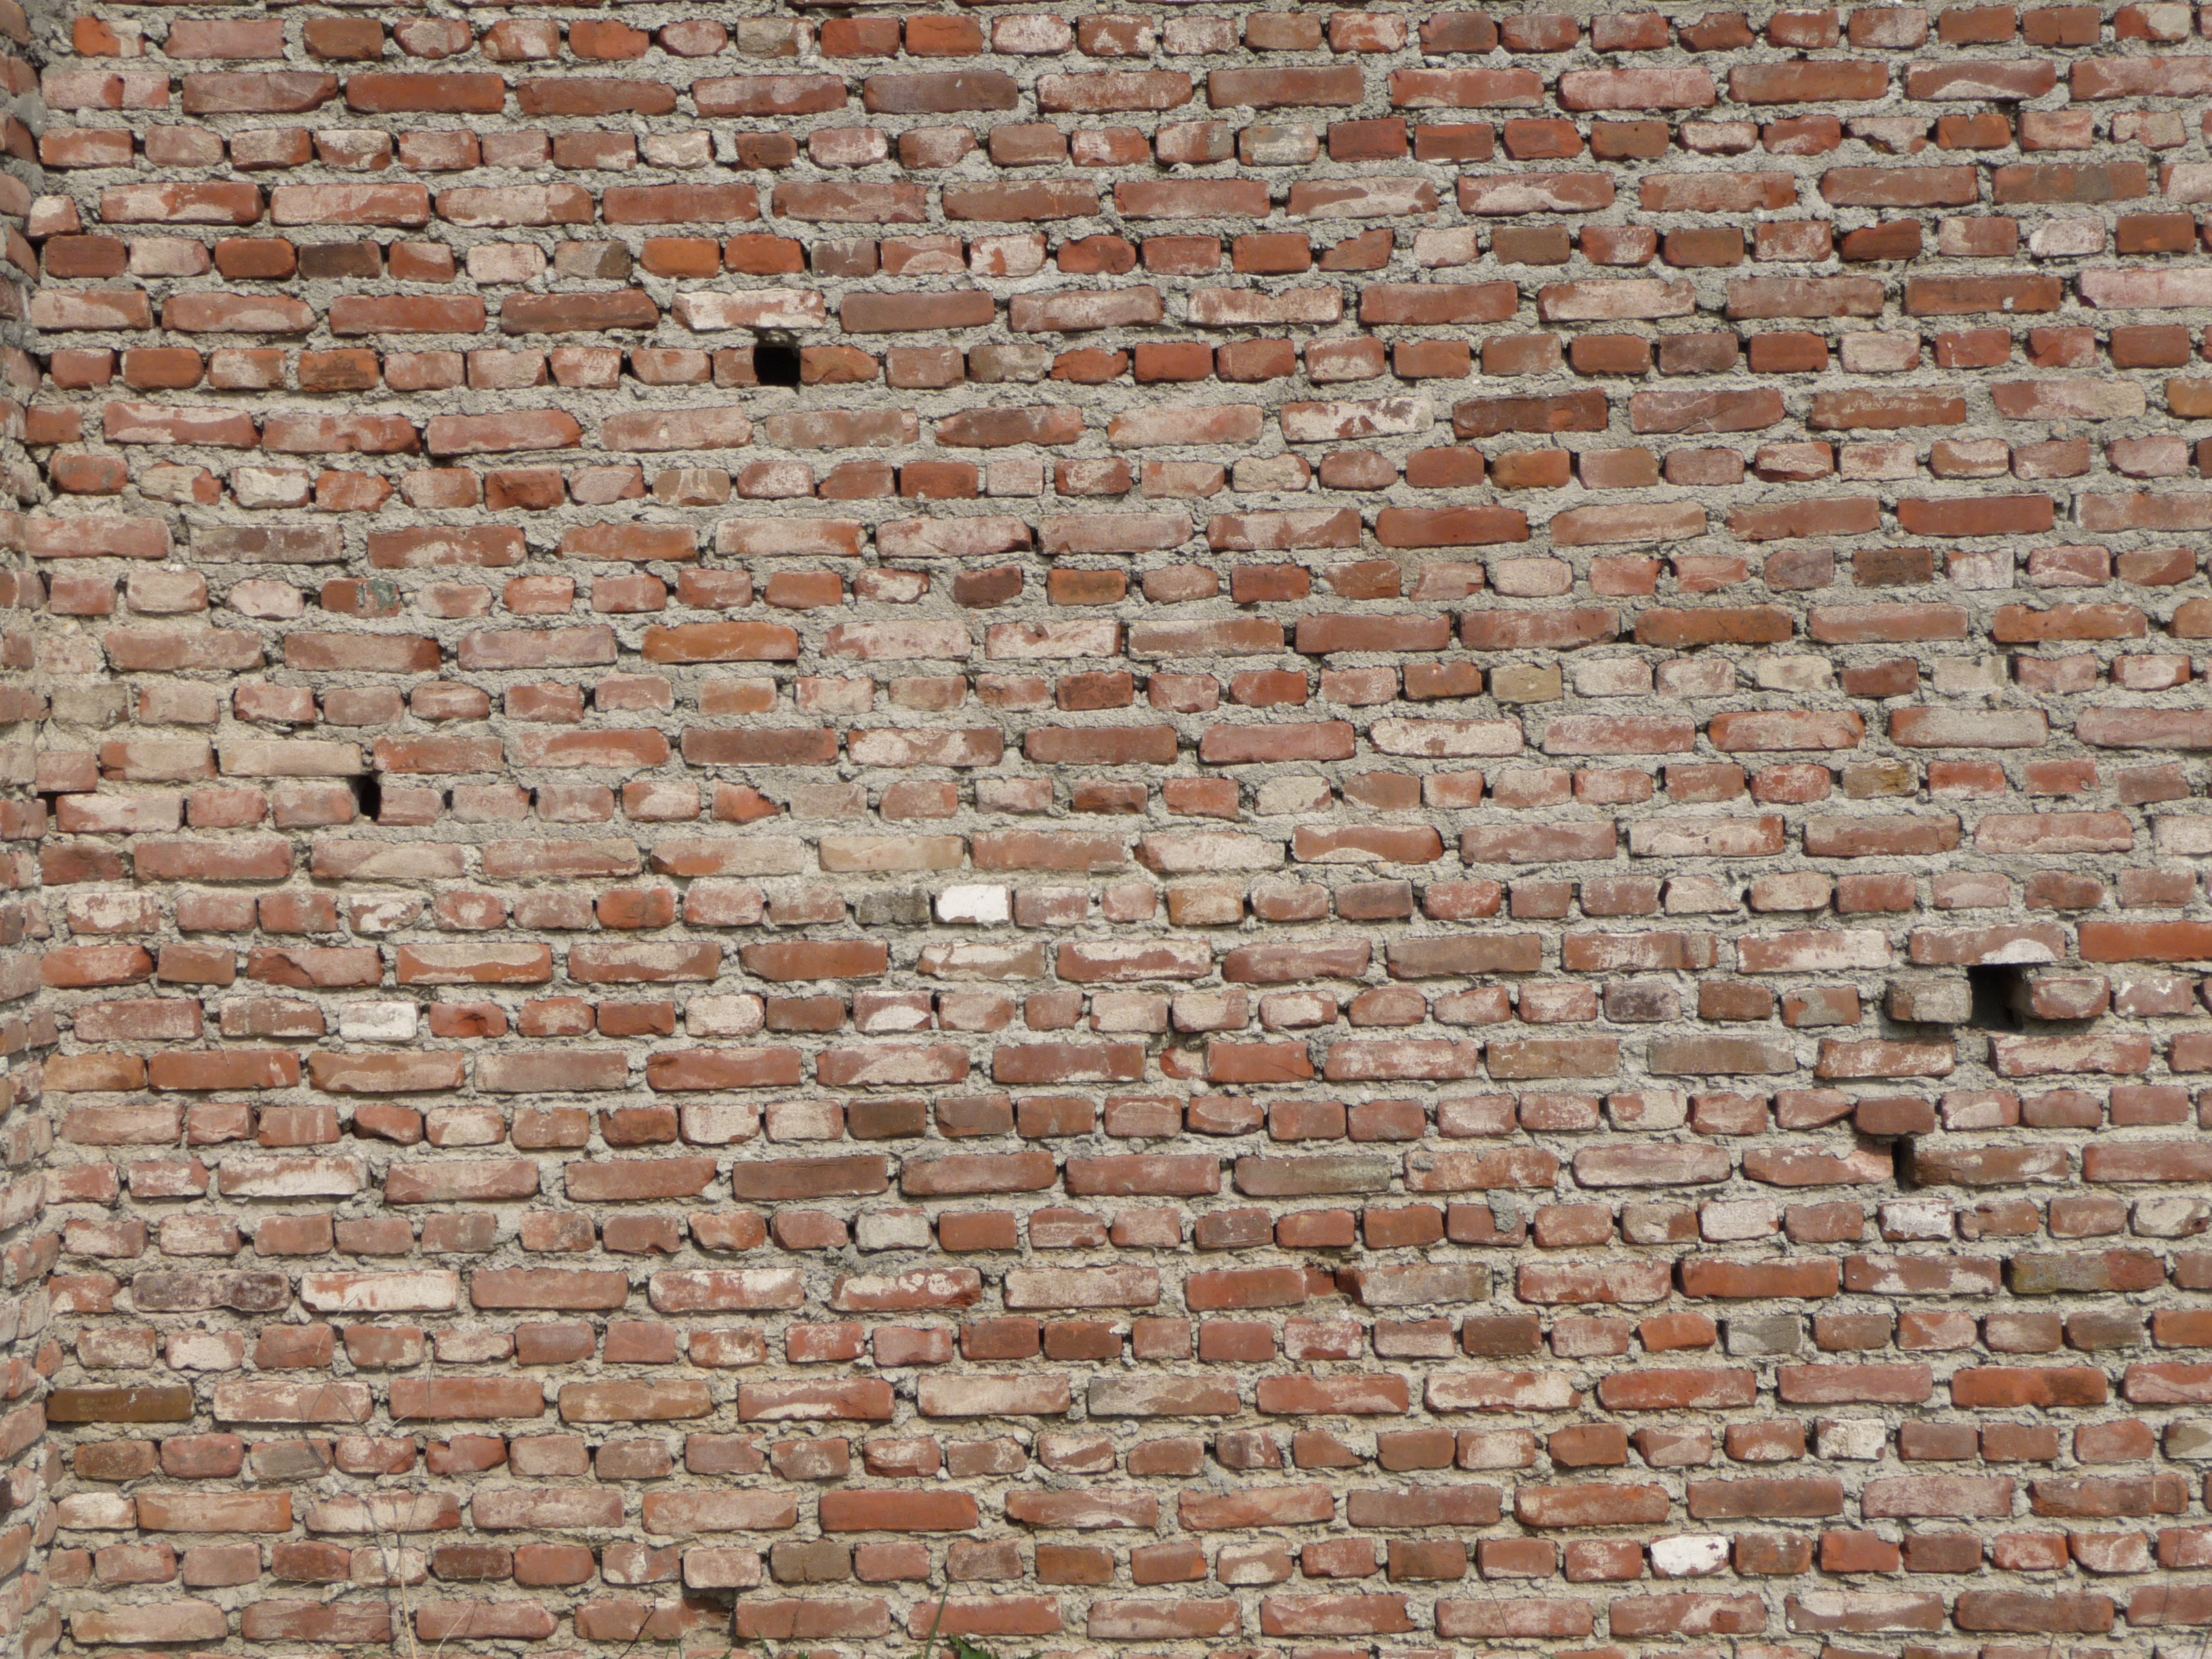 Brick Wall HD Full Wallpaper